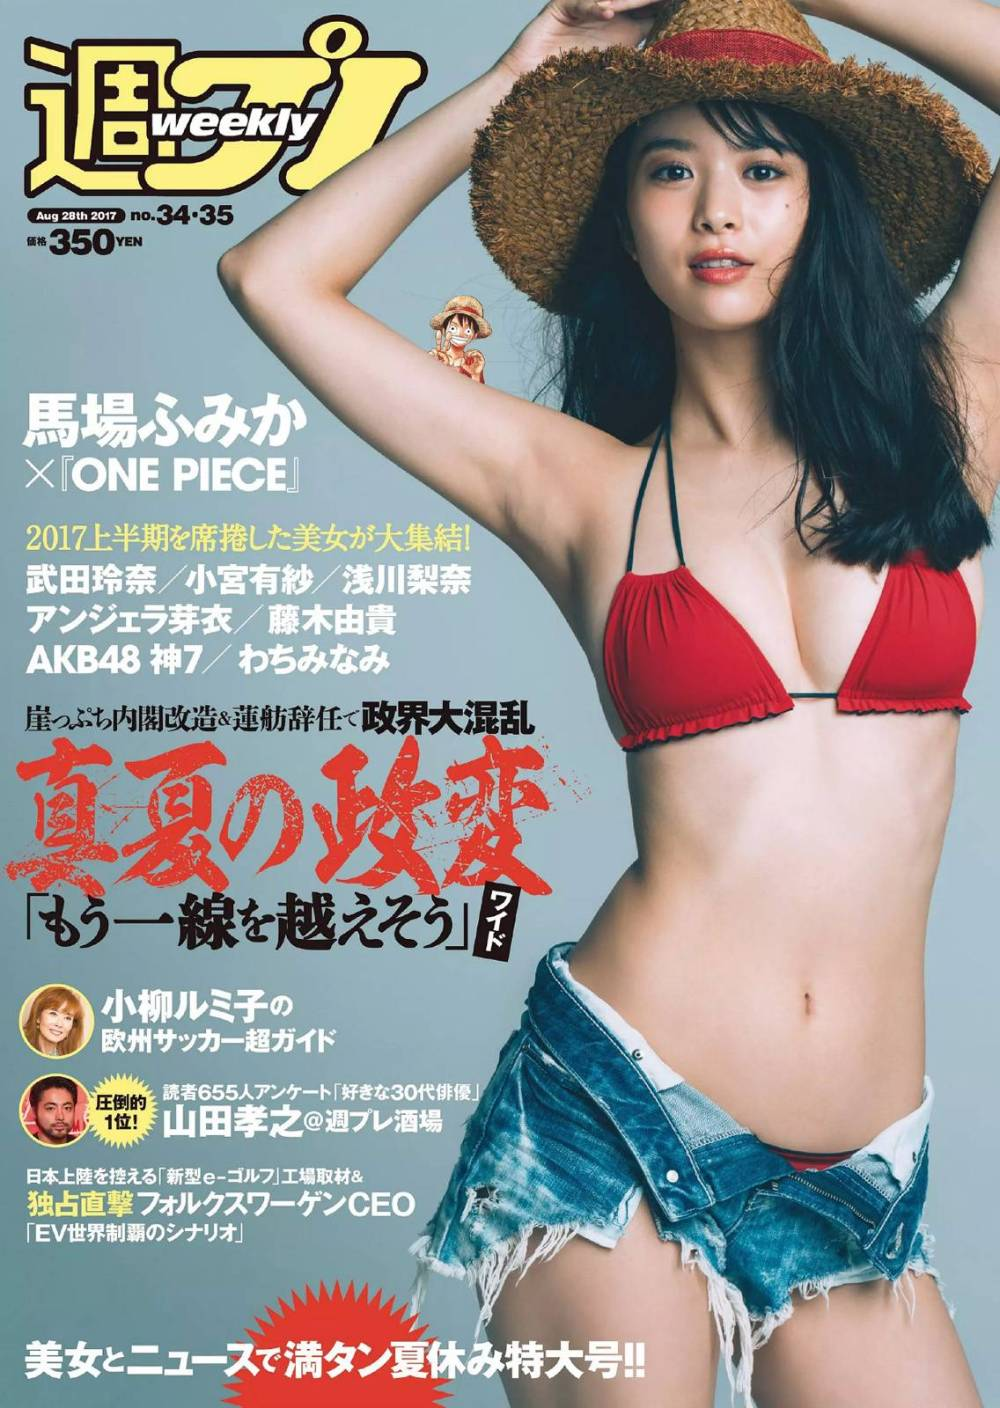 Baba Fumika en la Weekly PlayBoy Magazine (2017 No.34-35) #馬場ふみか